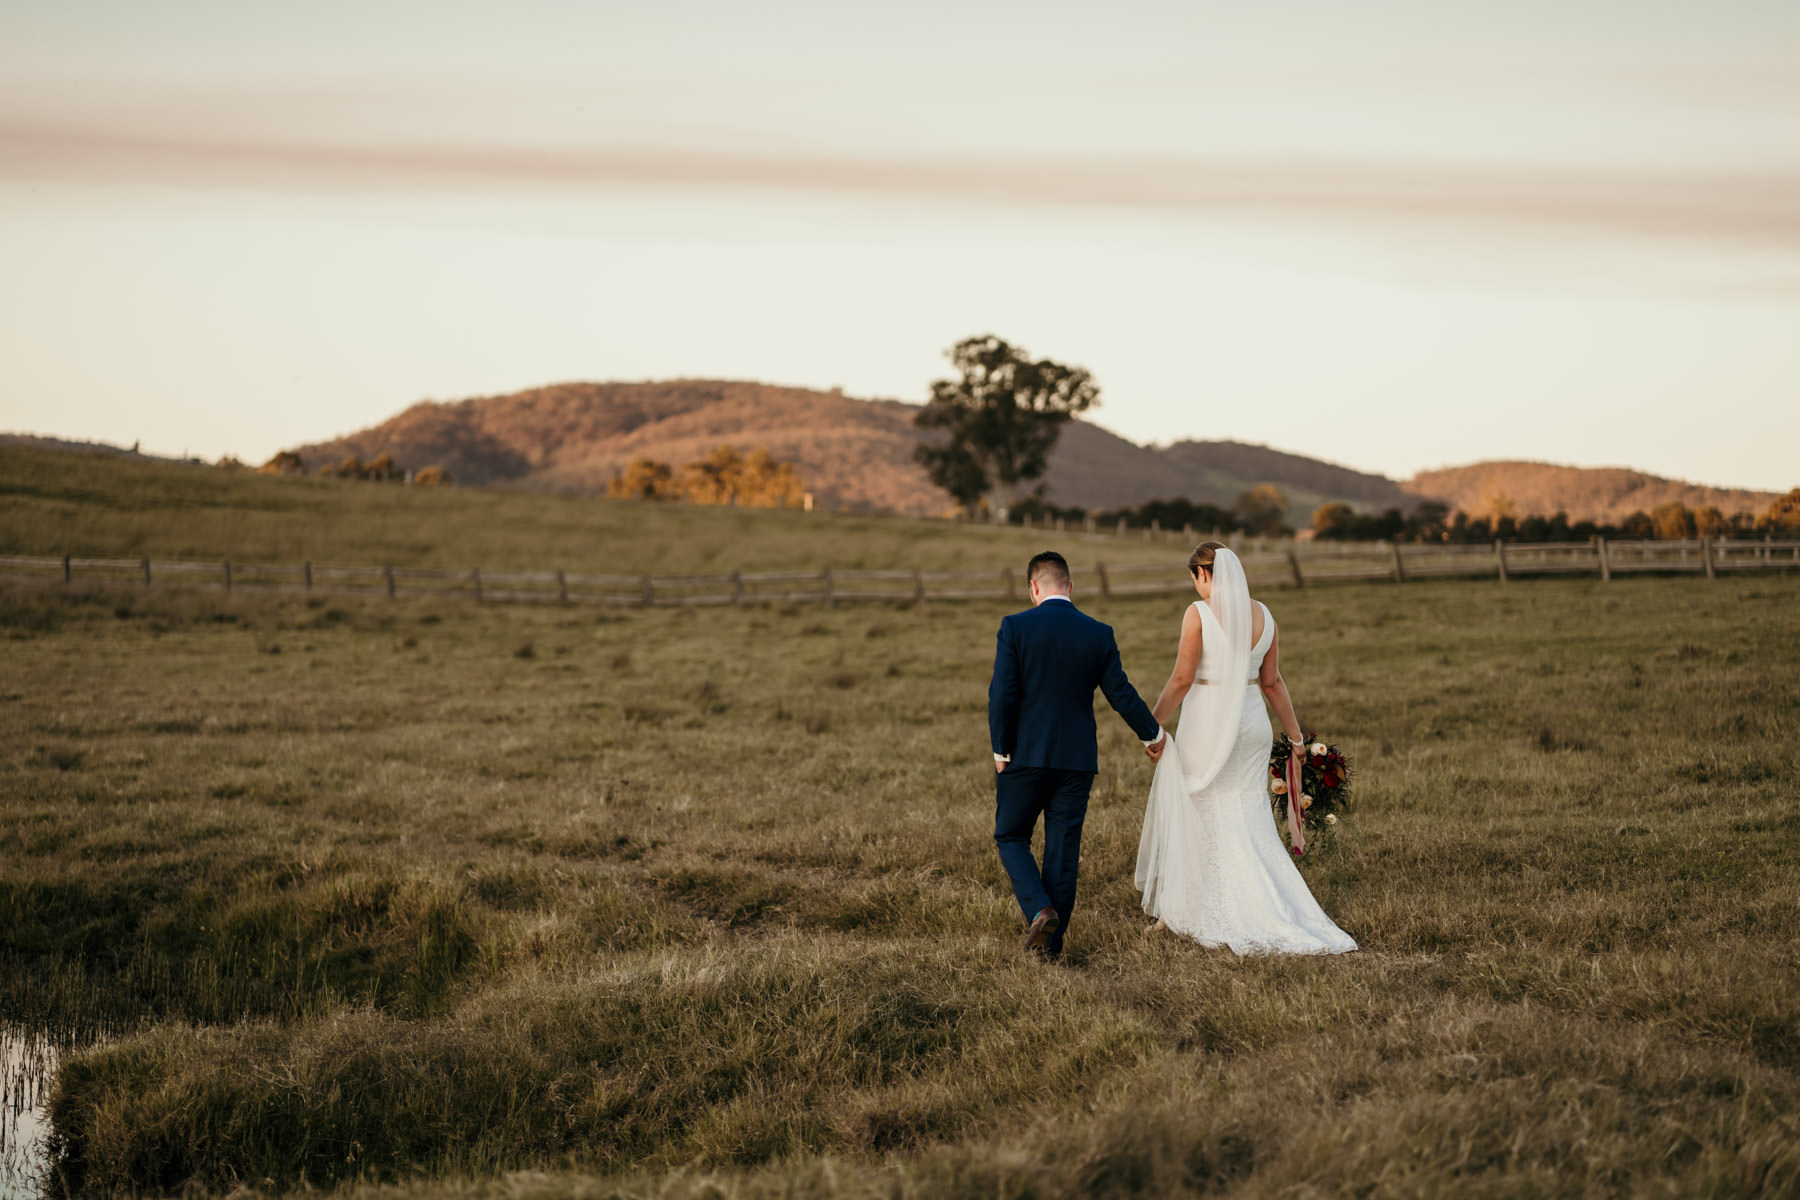 107Hunter Valley Wedding Photographers Bryce Noone Photography at Tocal Homestead Wedding Venue.jpg